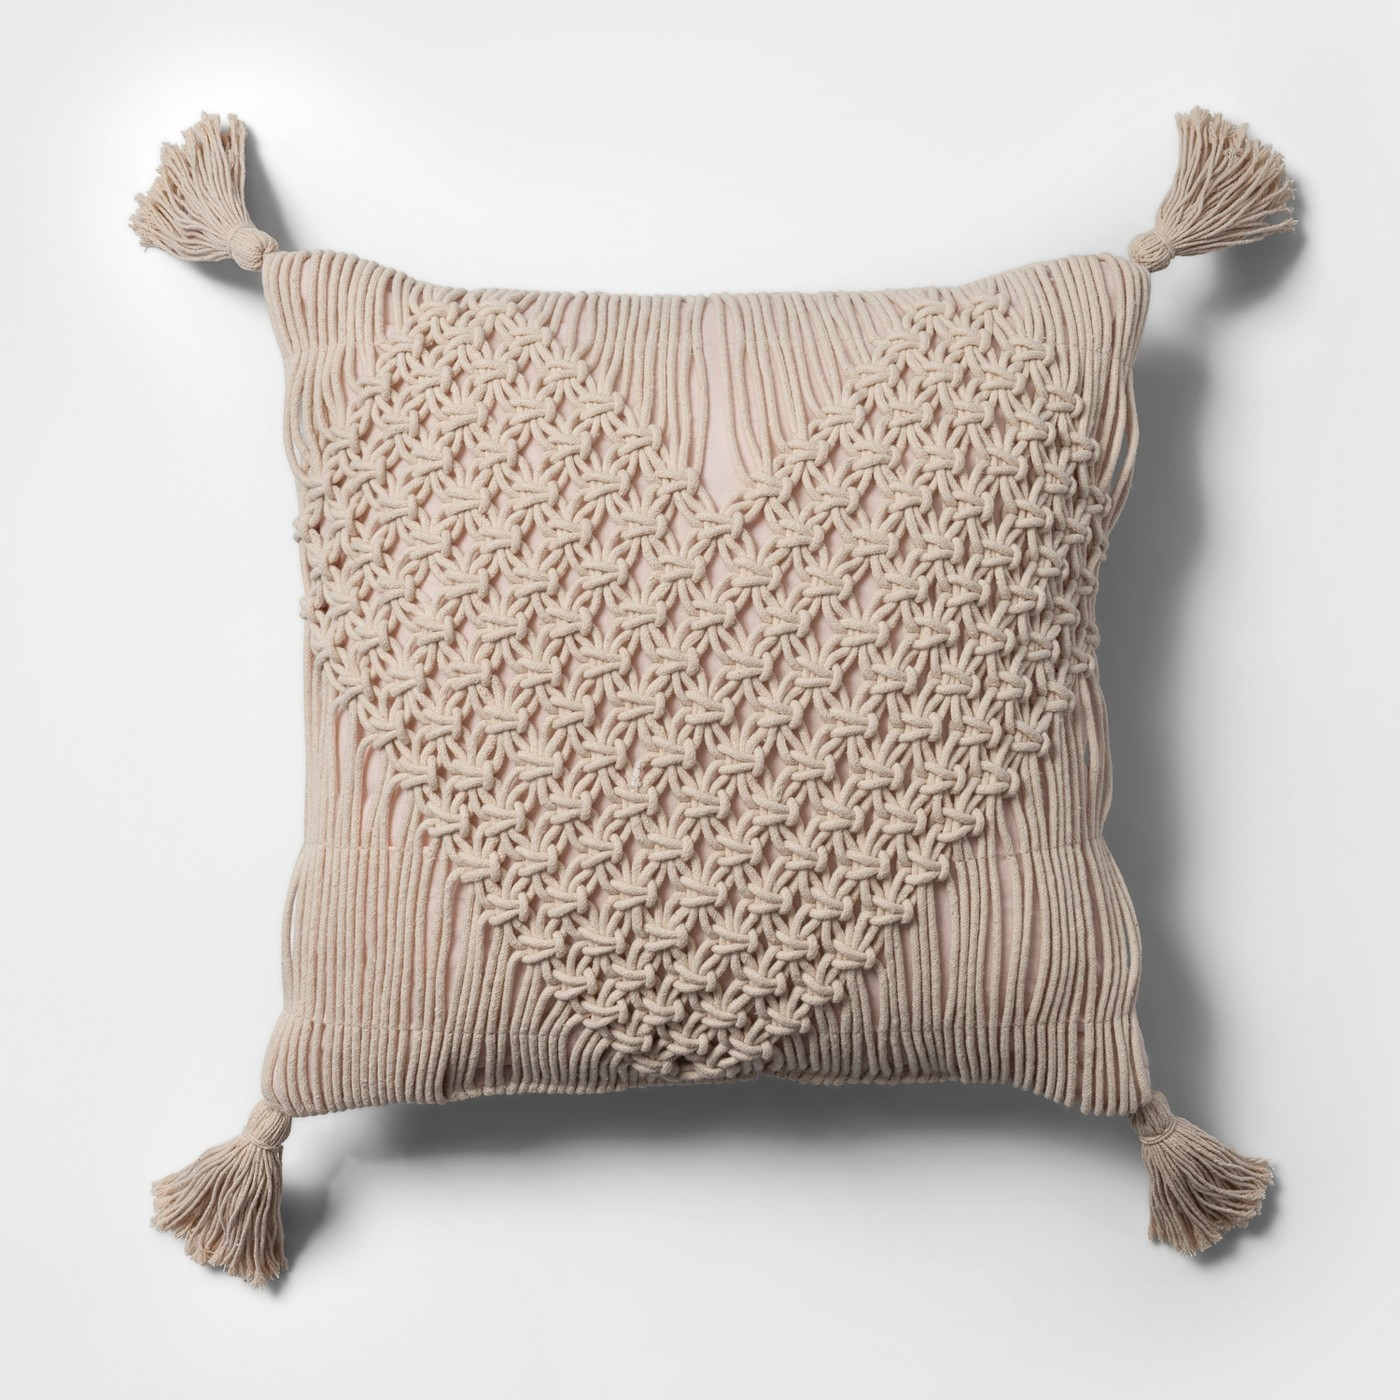 Macrame Heart Shaped Square Throw Pillow Cream - Opalhouse™ - image 1 of 3